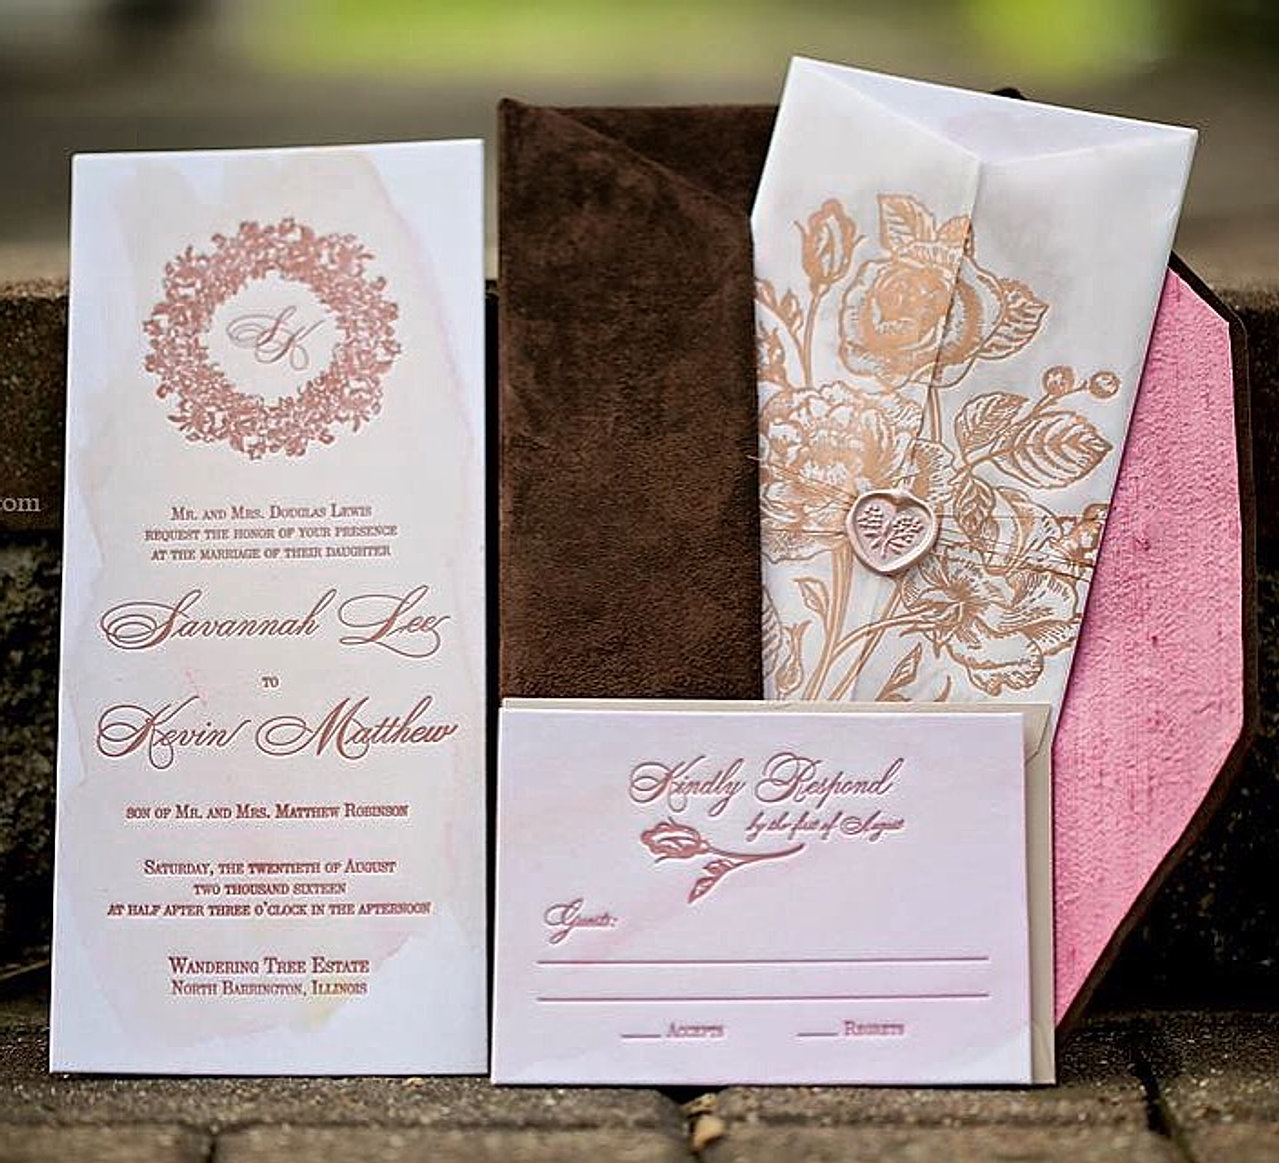 Lucky Invitations Couture Wedding Invitations – Luxury Wedding Invites